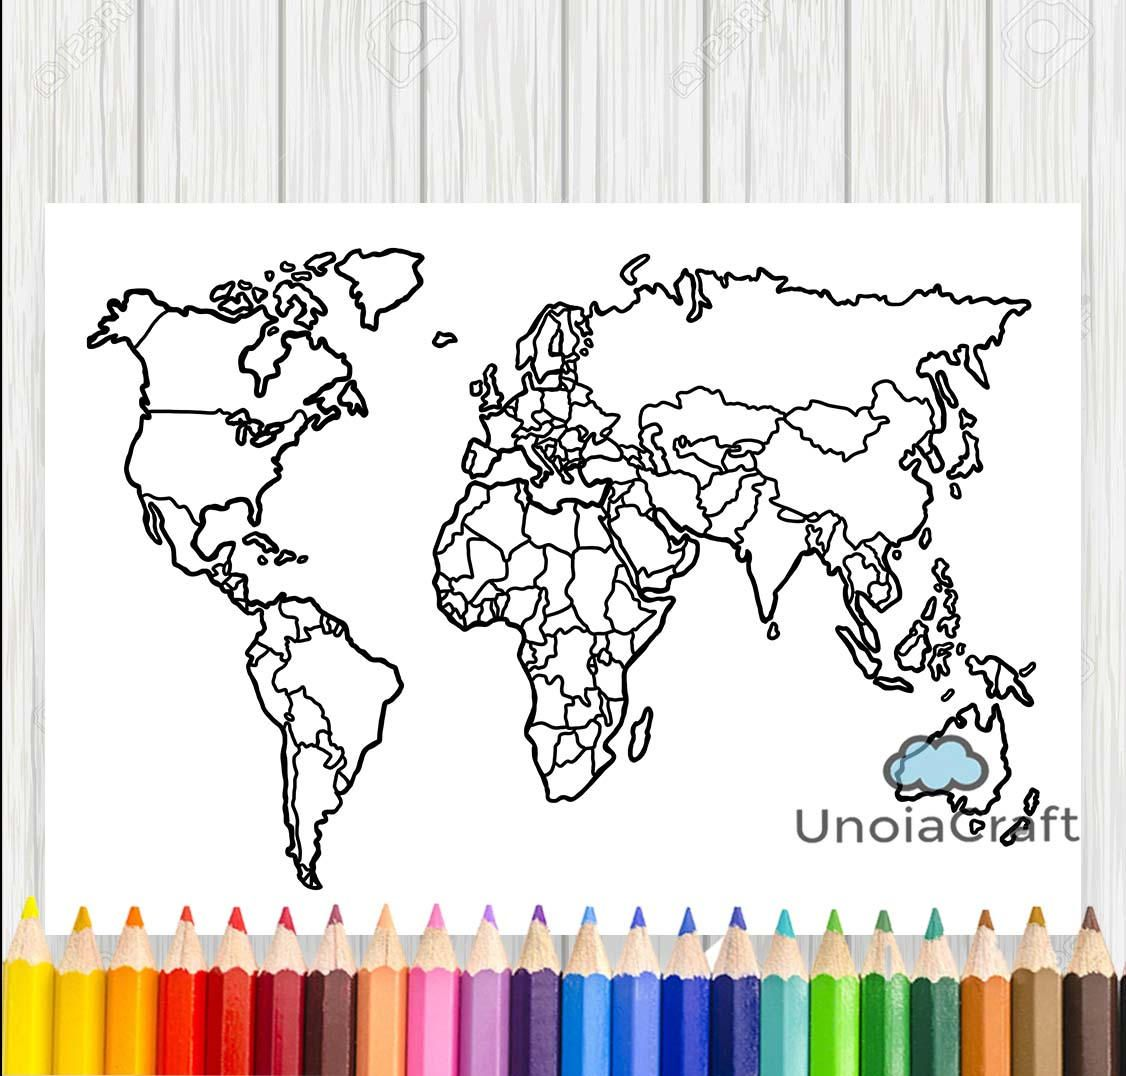 Blank world map coloring page printable world map sheet travel map blank world map coloring page printable world map sheet travel map diy print gumiabroncs Image collections